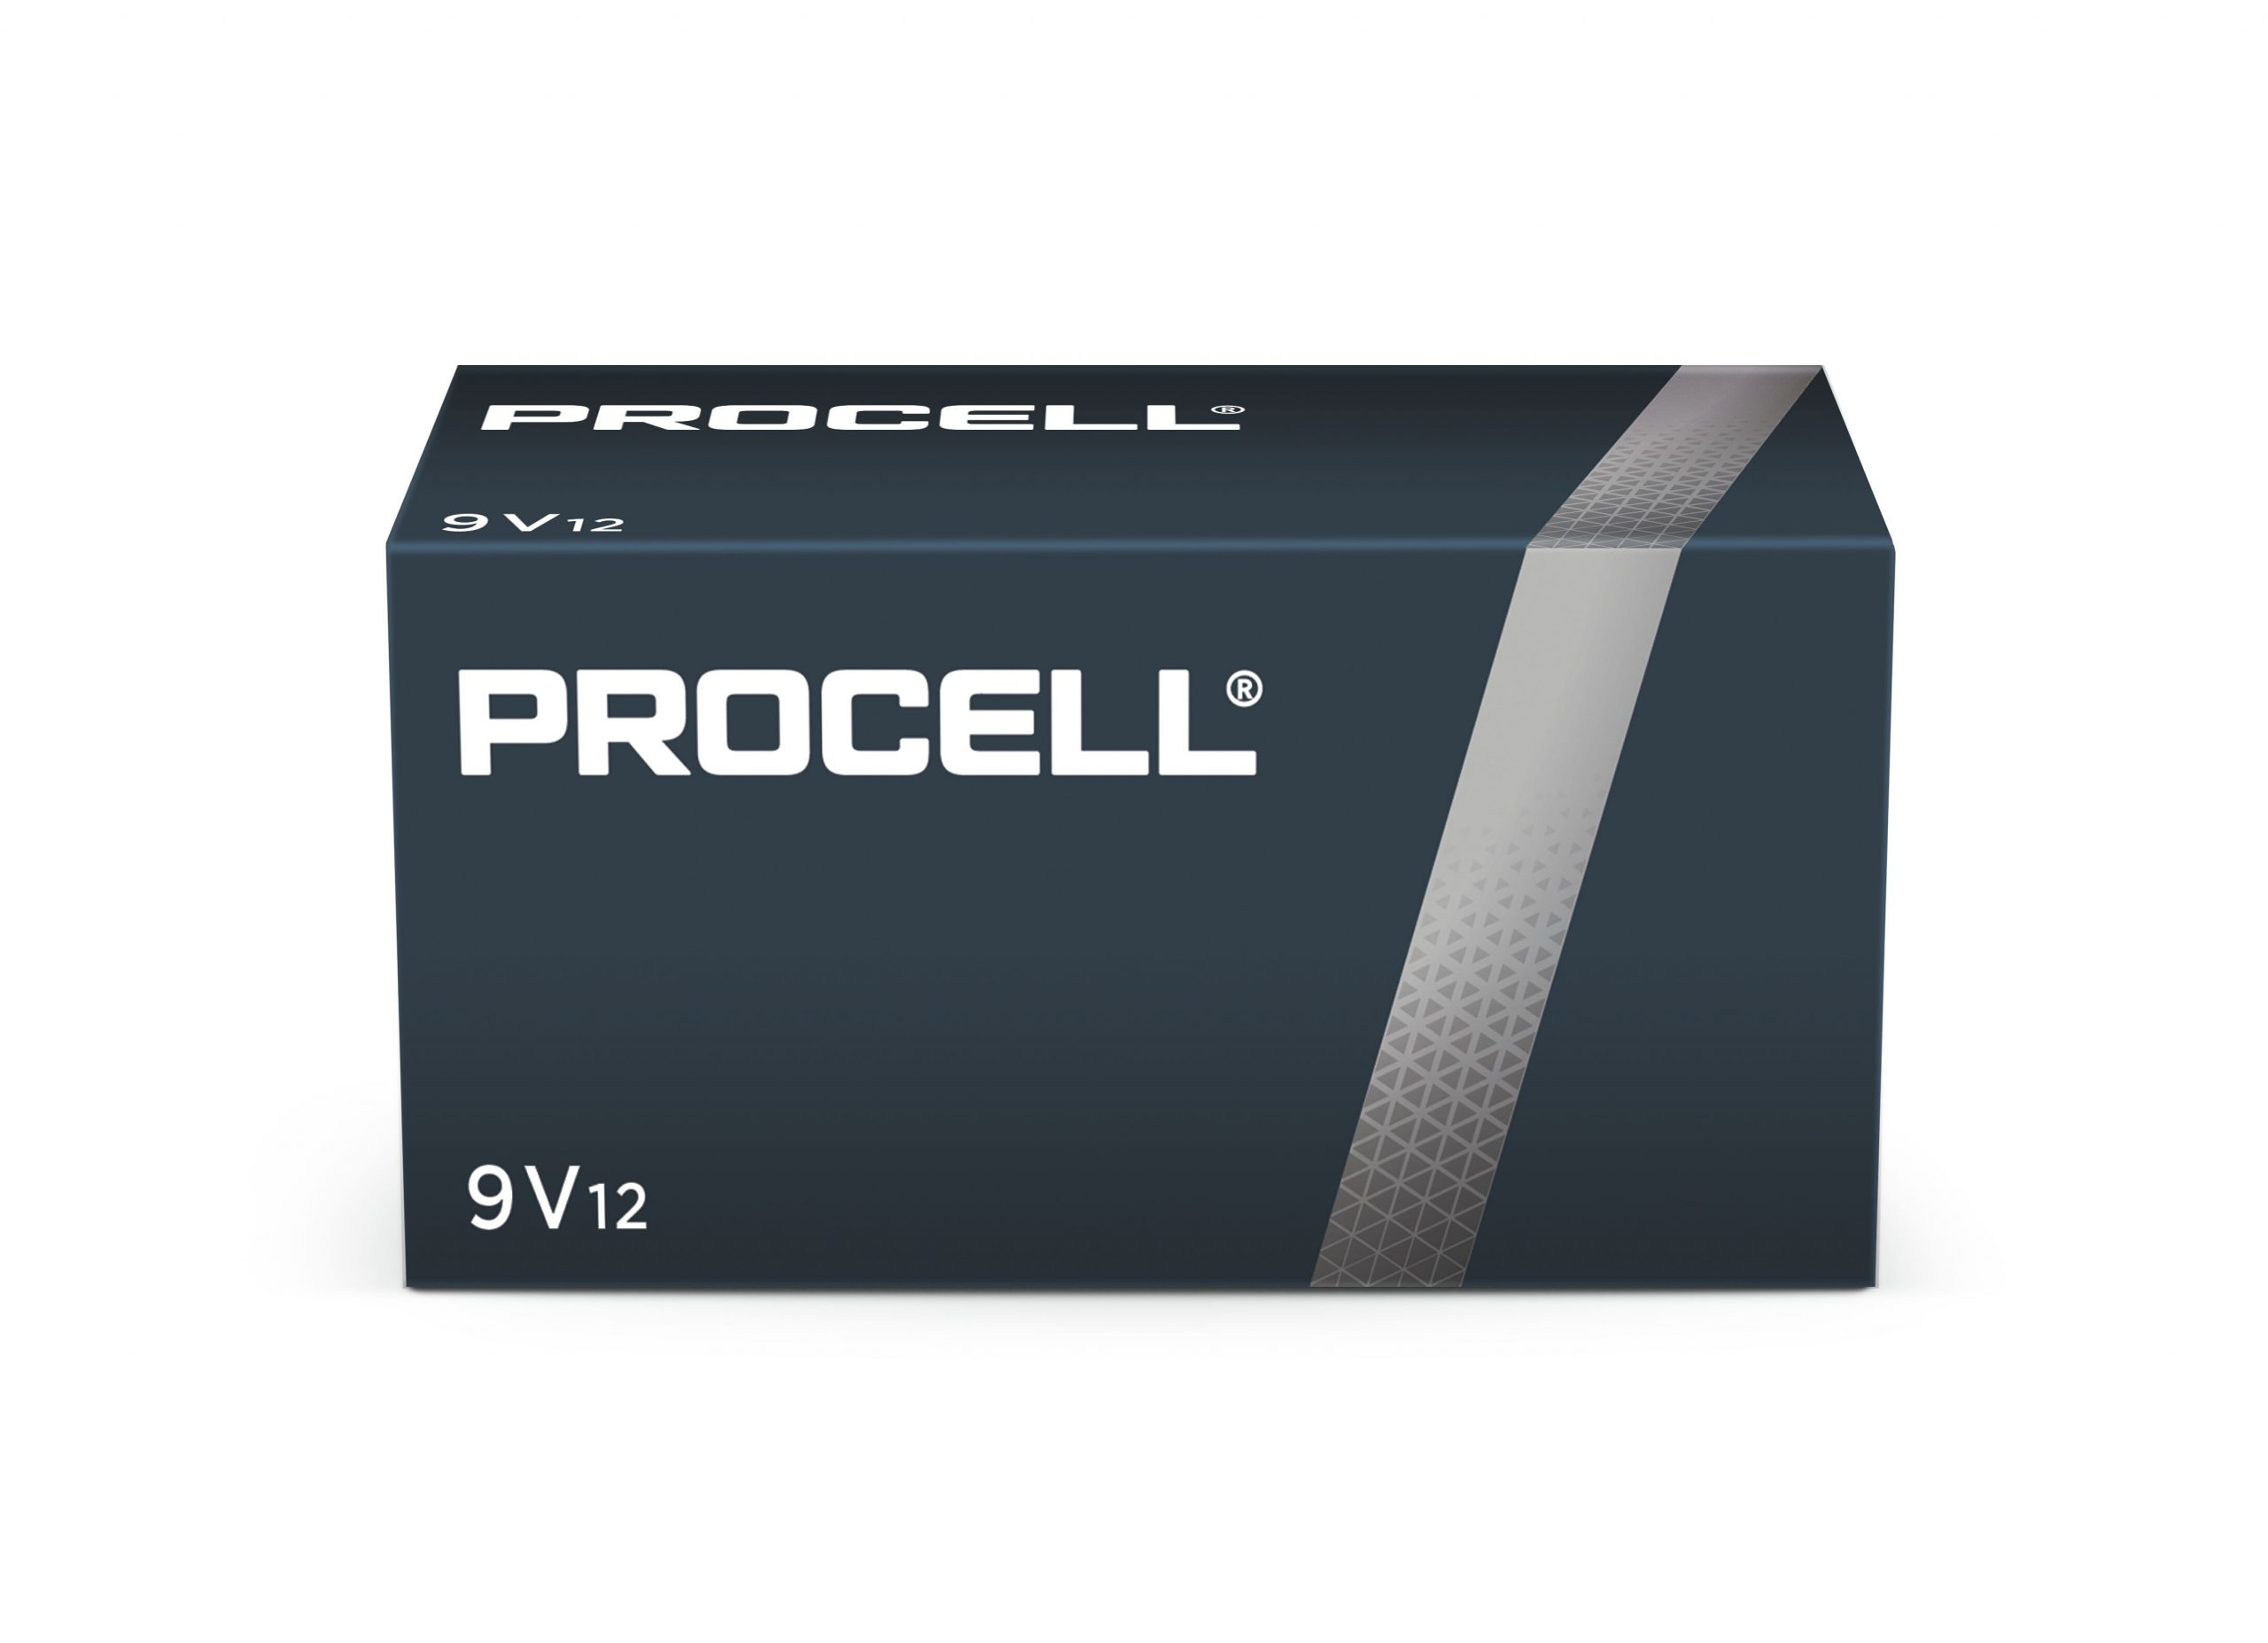 Procell_9V12_Box_Front